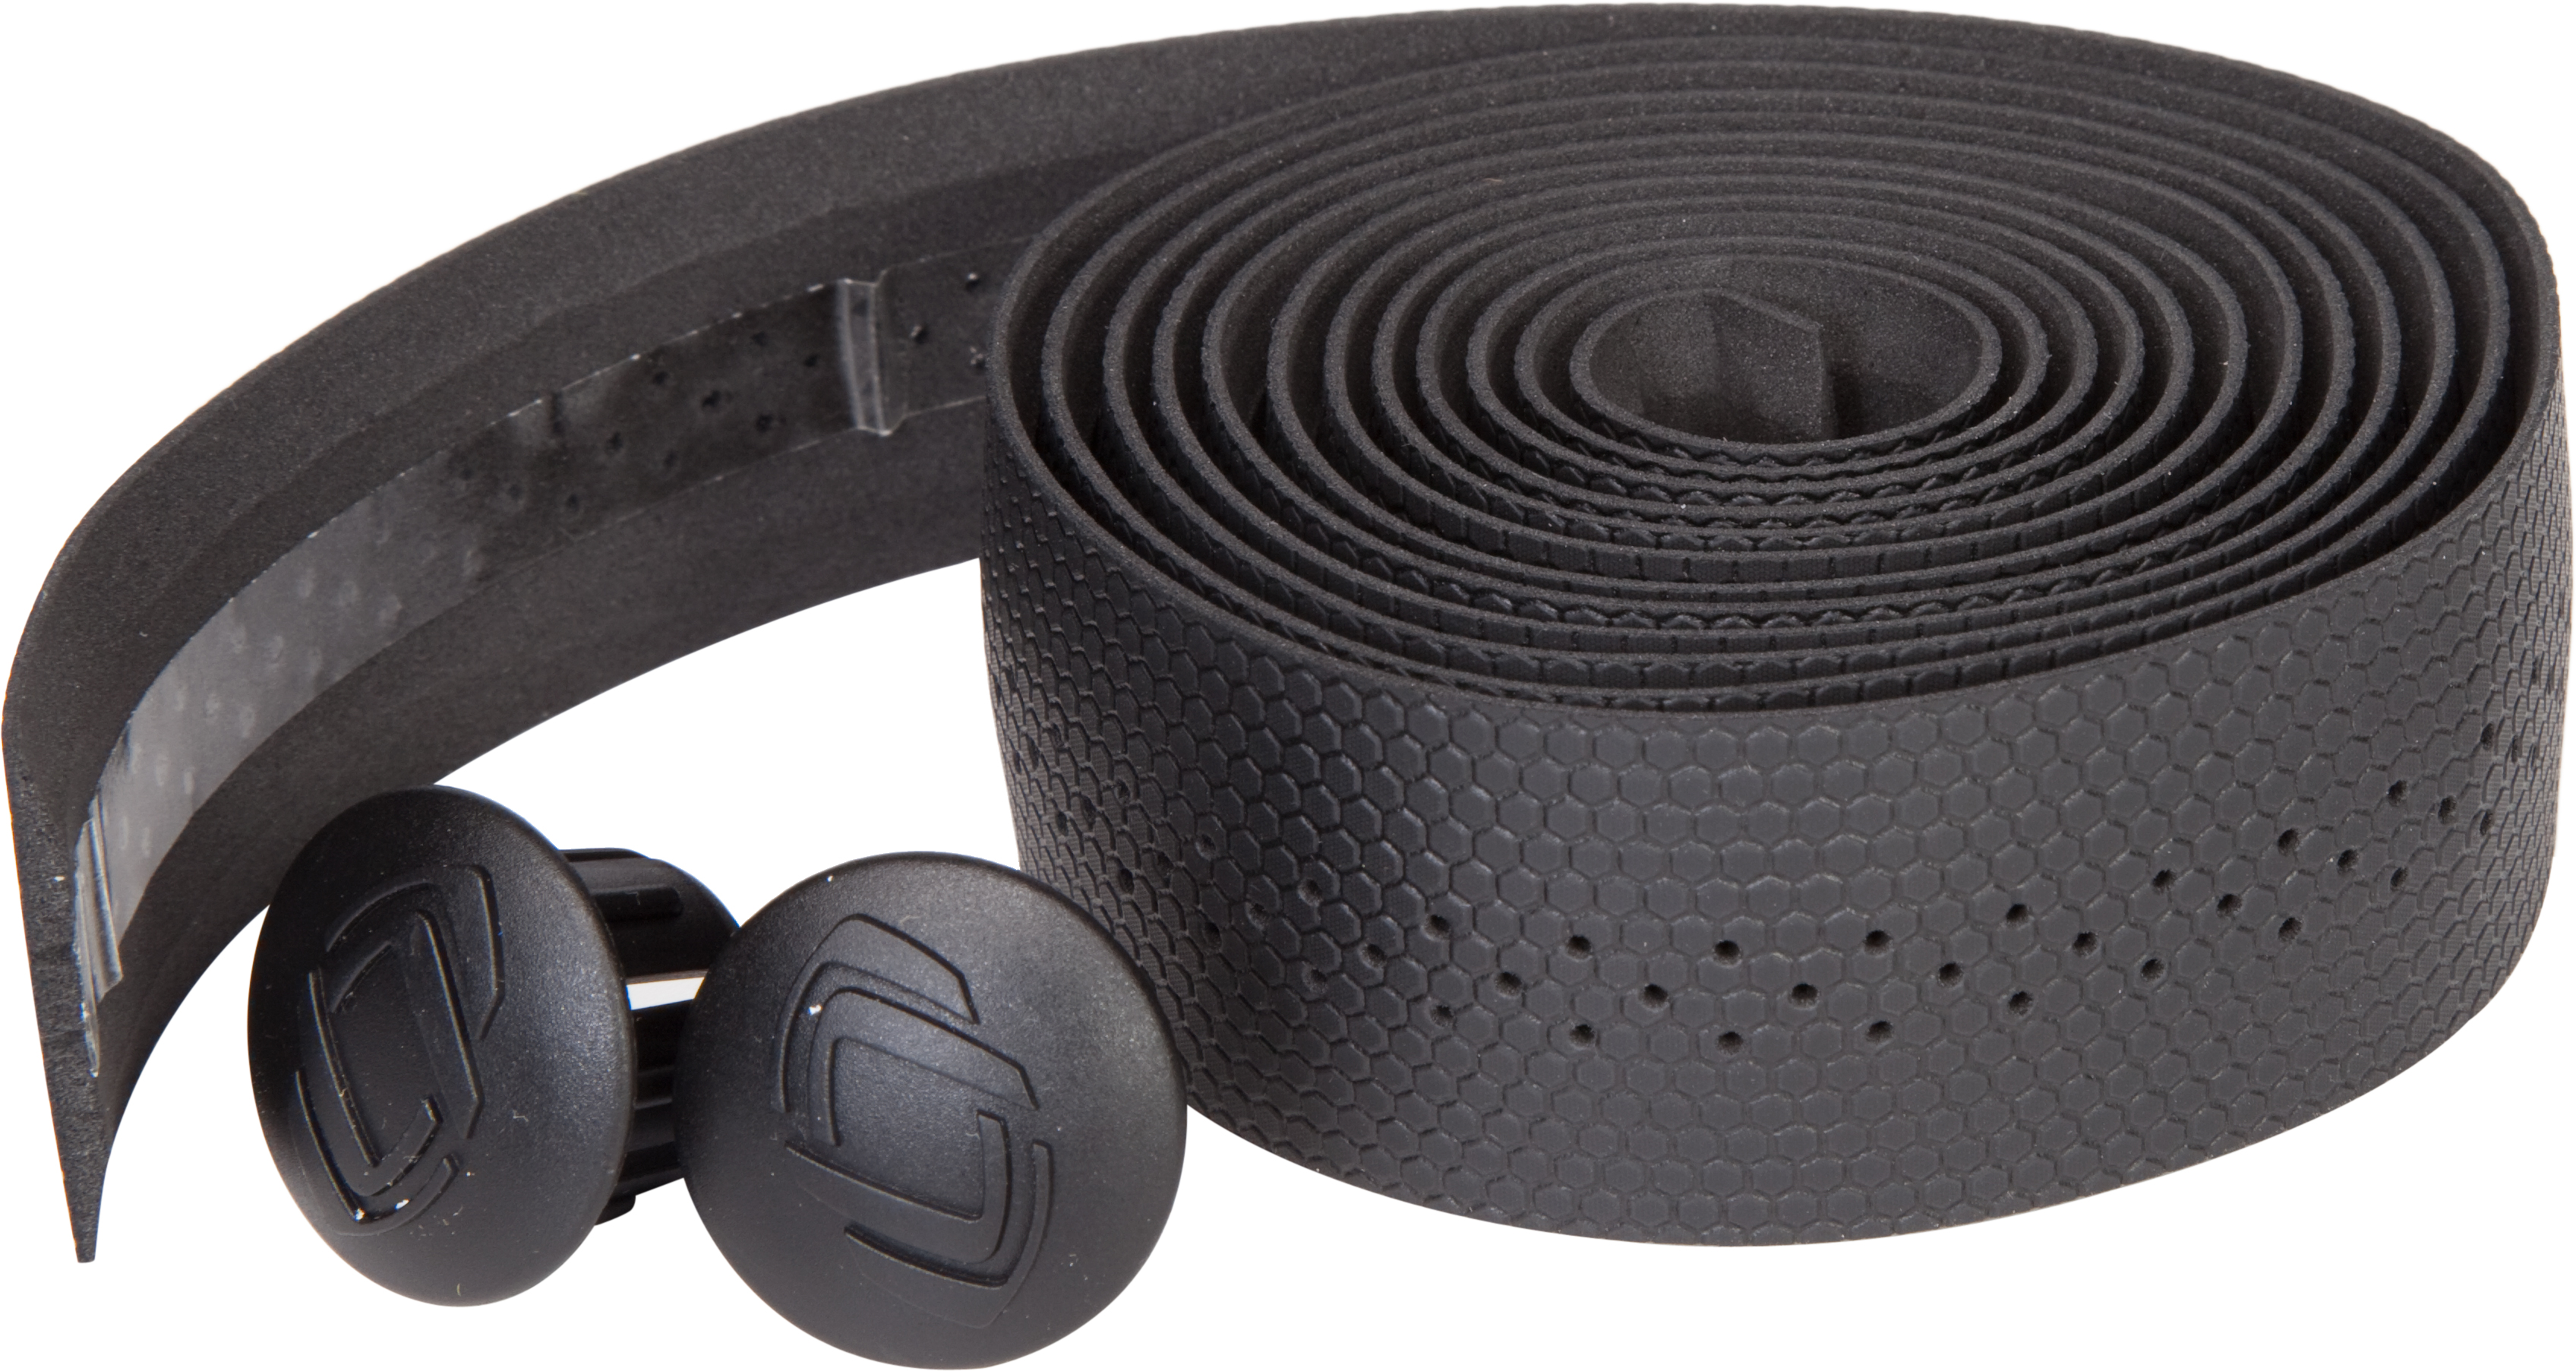 LifeLine Professional Bar Tape With Perforation | Styrbånd